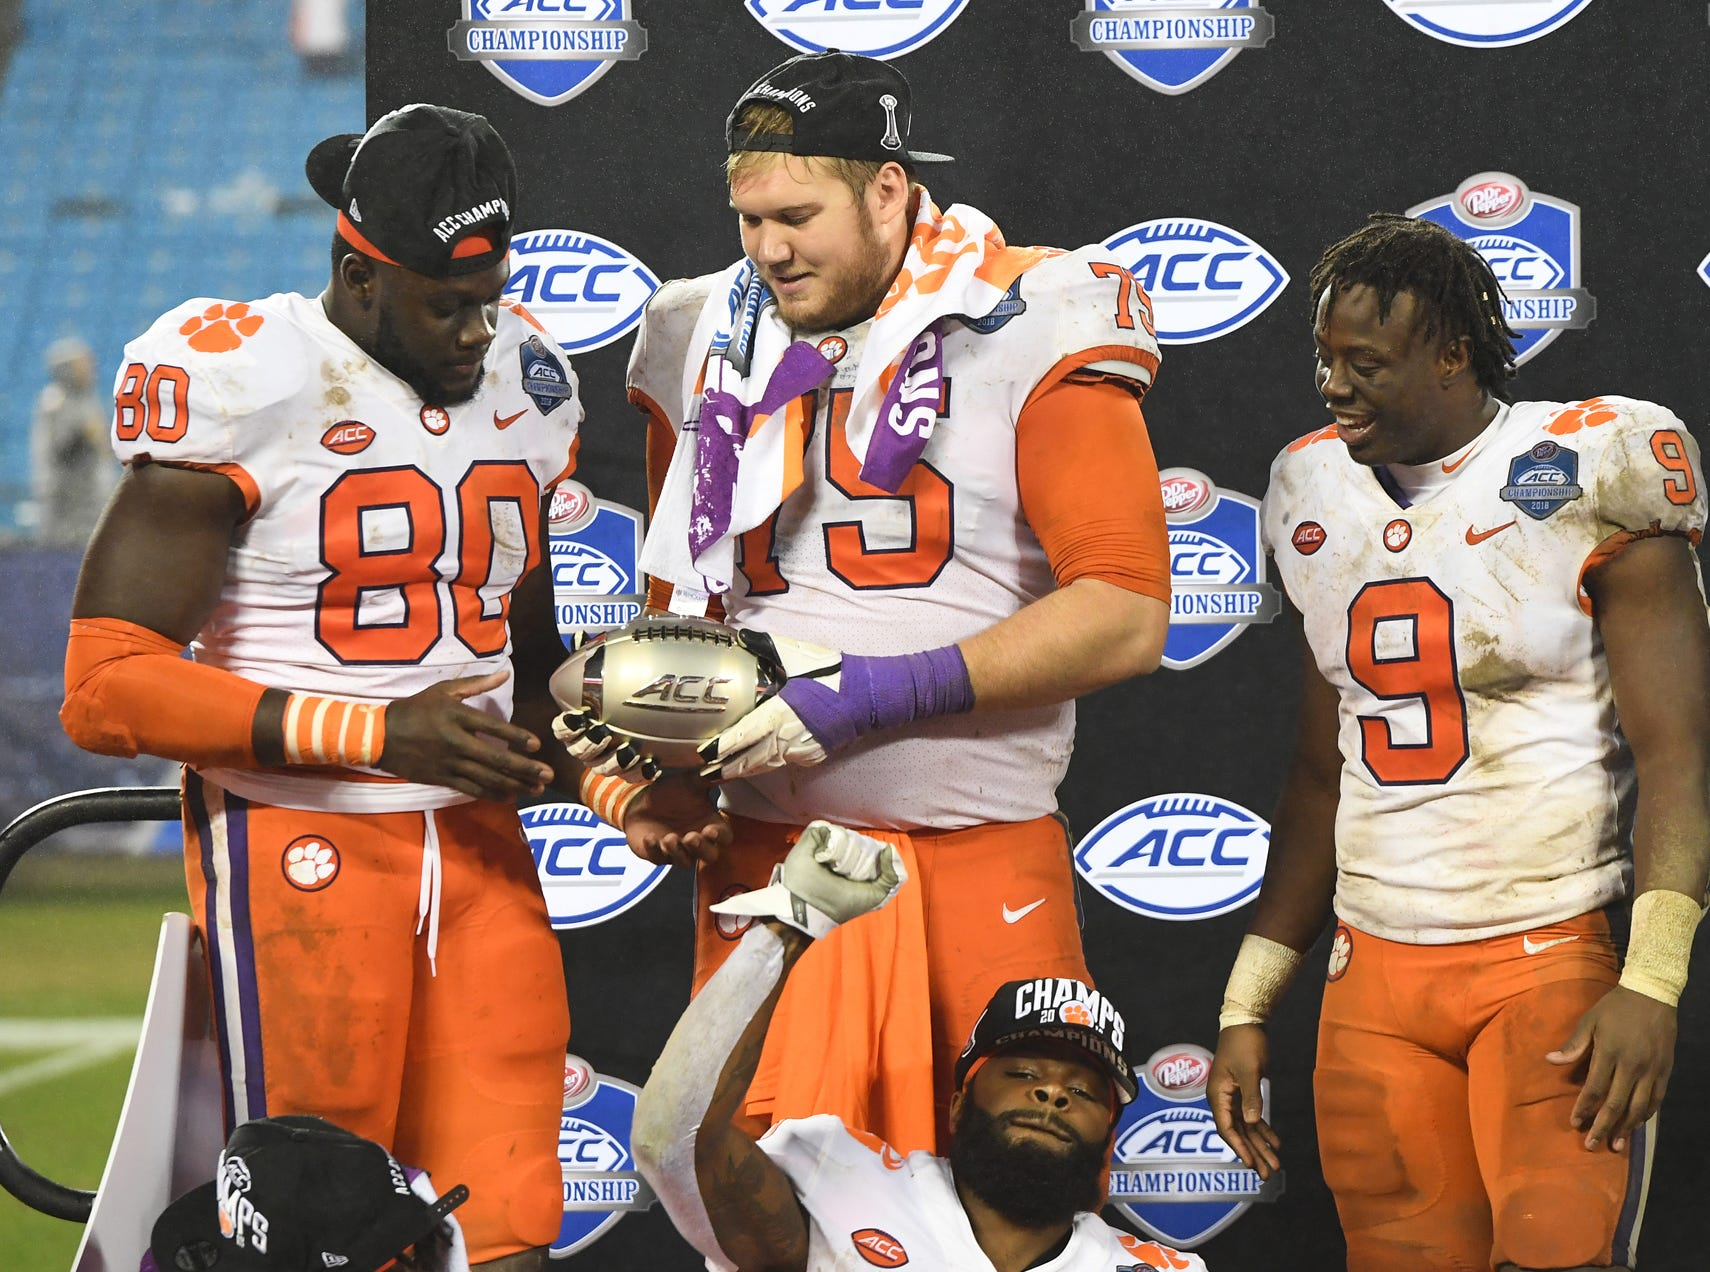 Clemson tight end Milan Richard (80) and offensive lineman Mitch Hyatt (75) hold the Dr. Pepper ACC Championship trophy after the Tigers 42-10 win over Pittsburgh at Bank of America Stadium in Charlotte, N.C. Saturday, December 1, 2018.